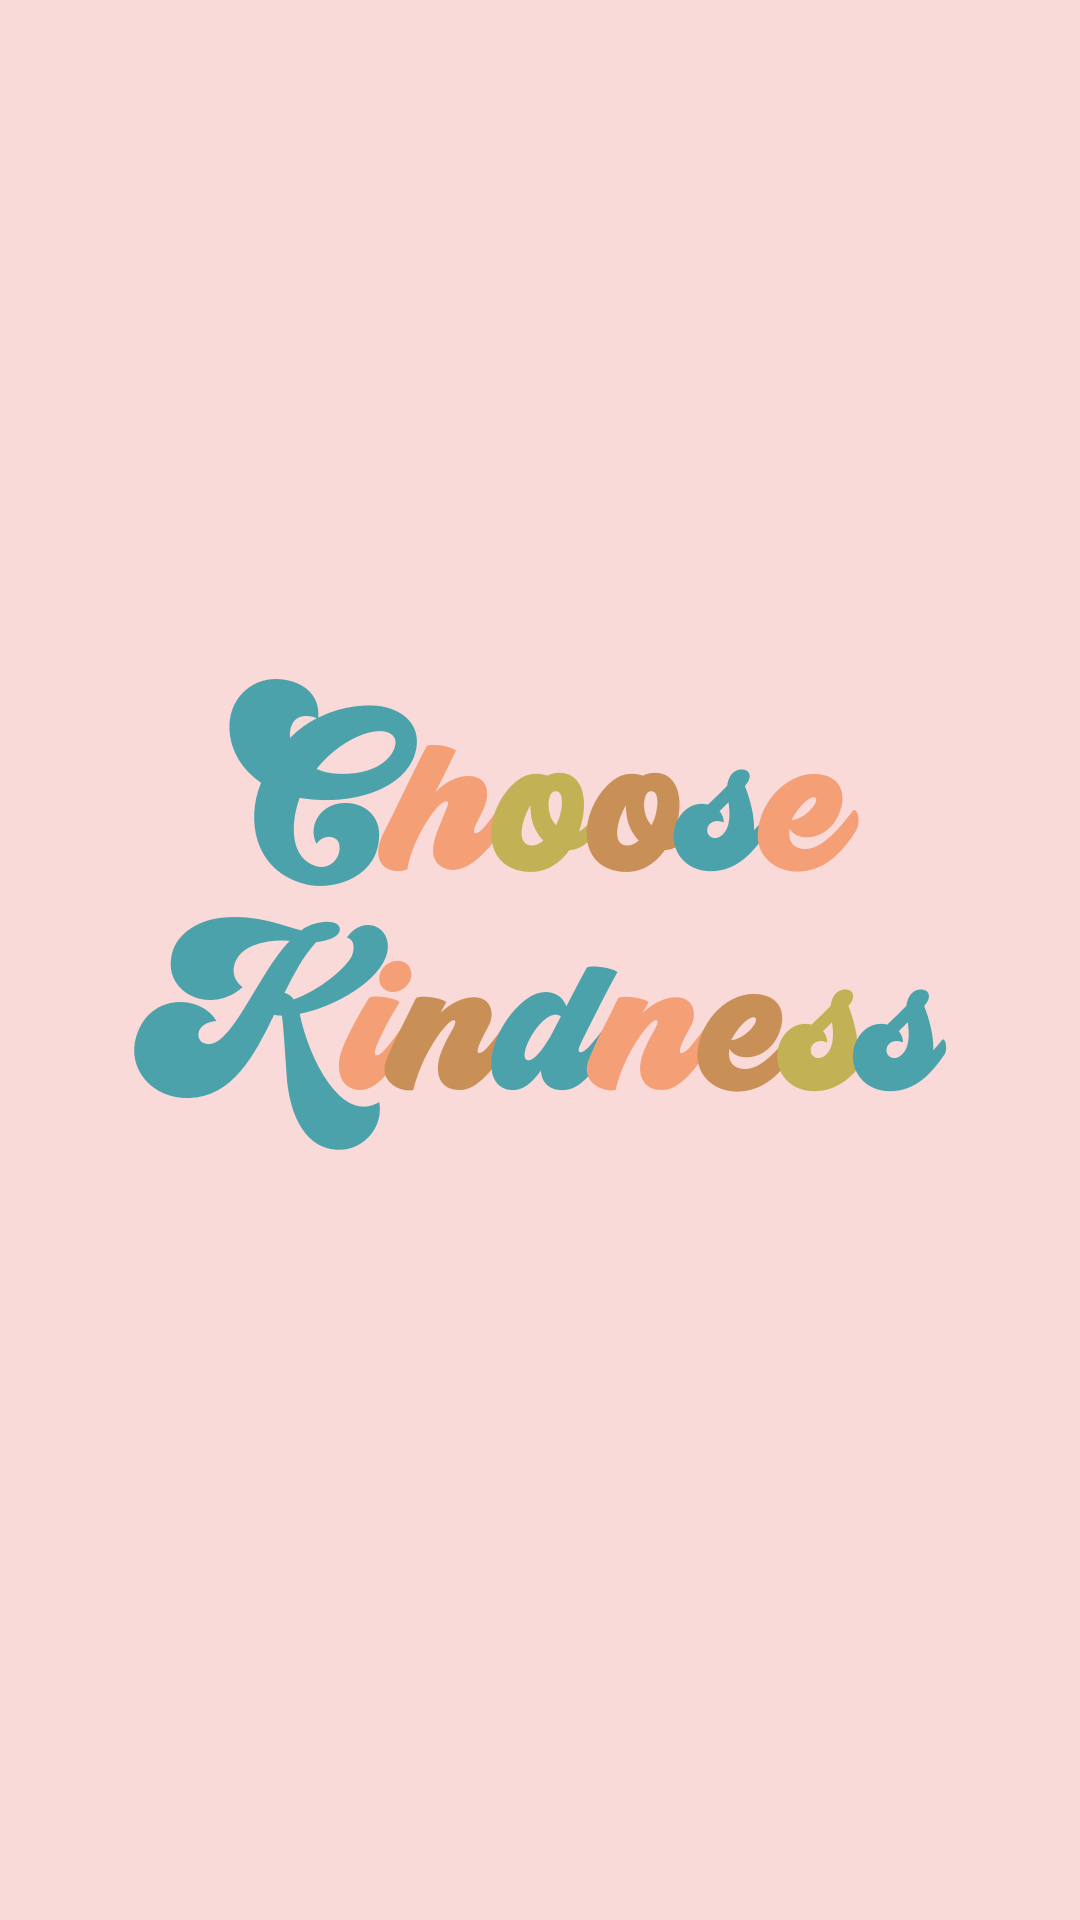 Choose Kindness Tennessee Blogger Quotes Daily Quotes Lifestyle Quotes Daily Thoughts Words To L Apple Watch Wallpaper Watch Wallpaper Wallpaper Quotes